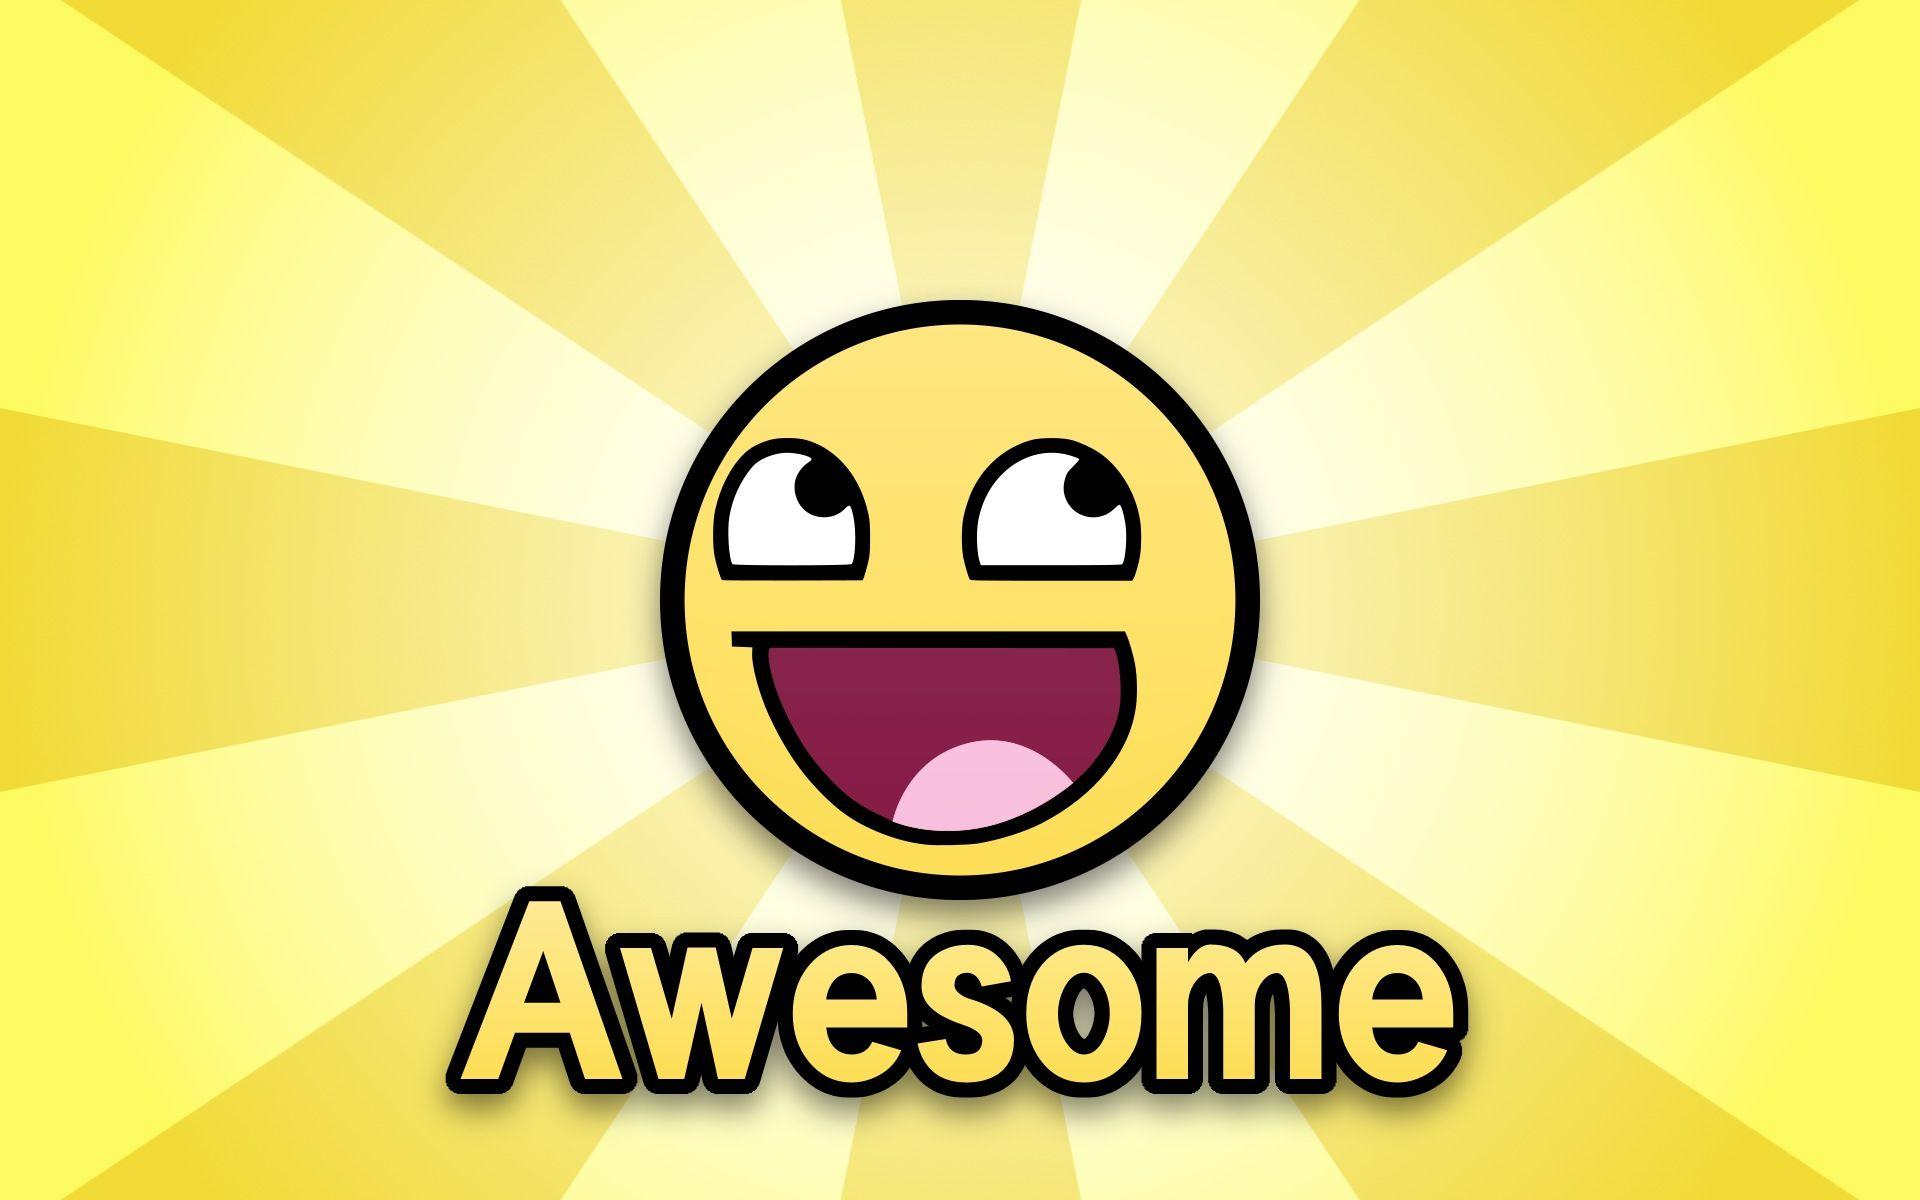 Awesome face wallpapers wallpaper cave awesome face awesome face wallpaper 29339096 fanpop voltagebd Image collections